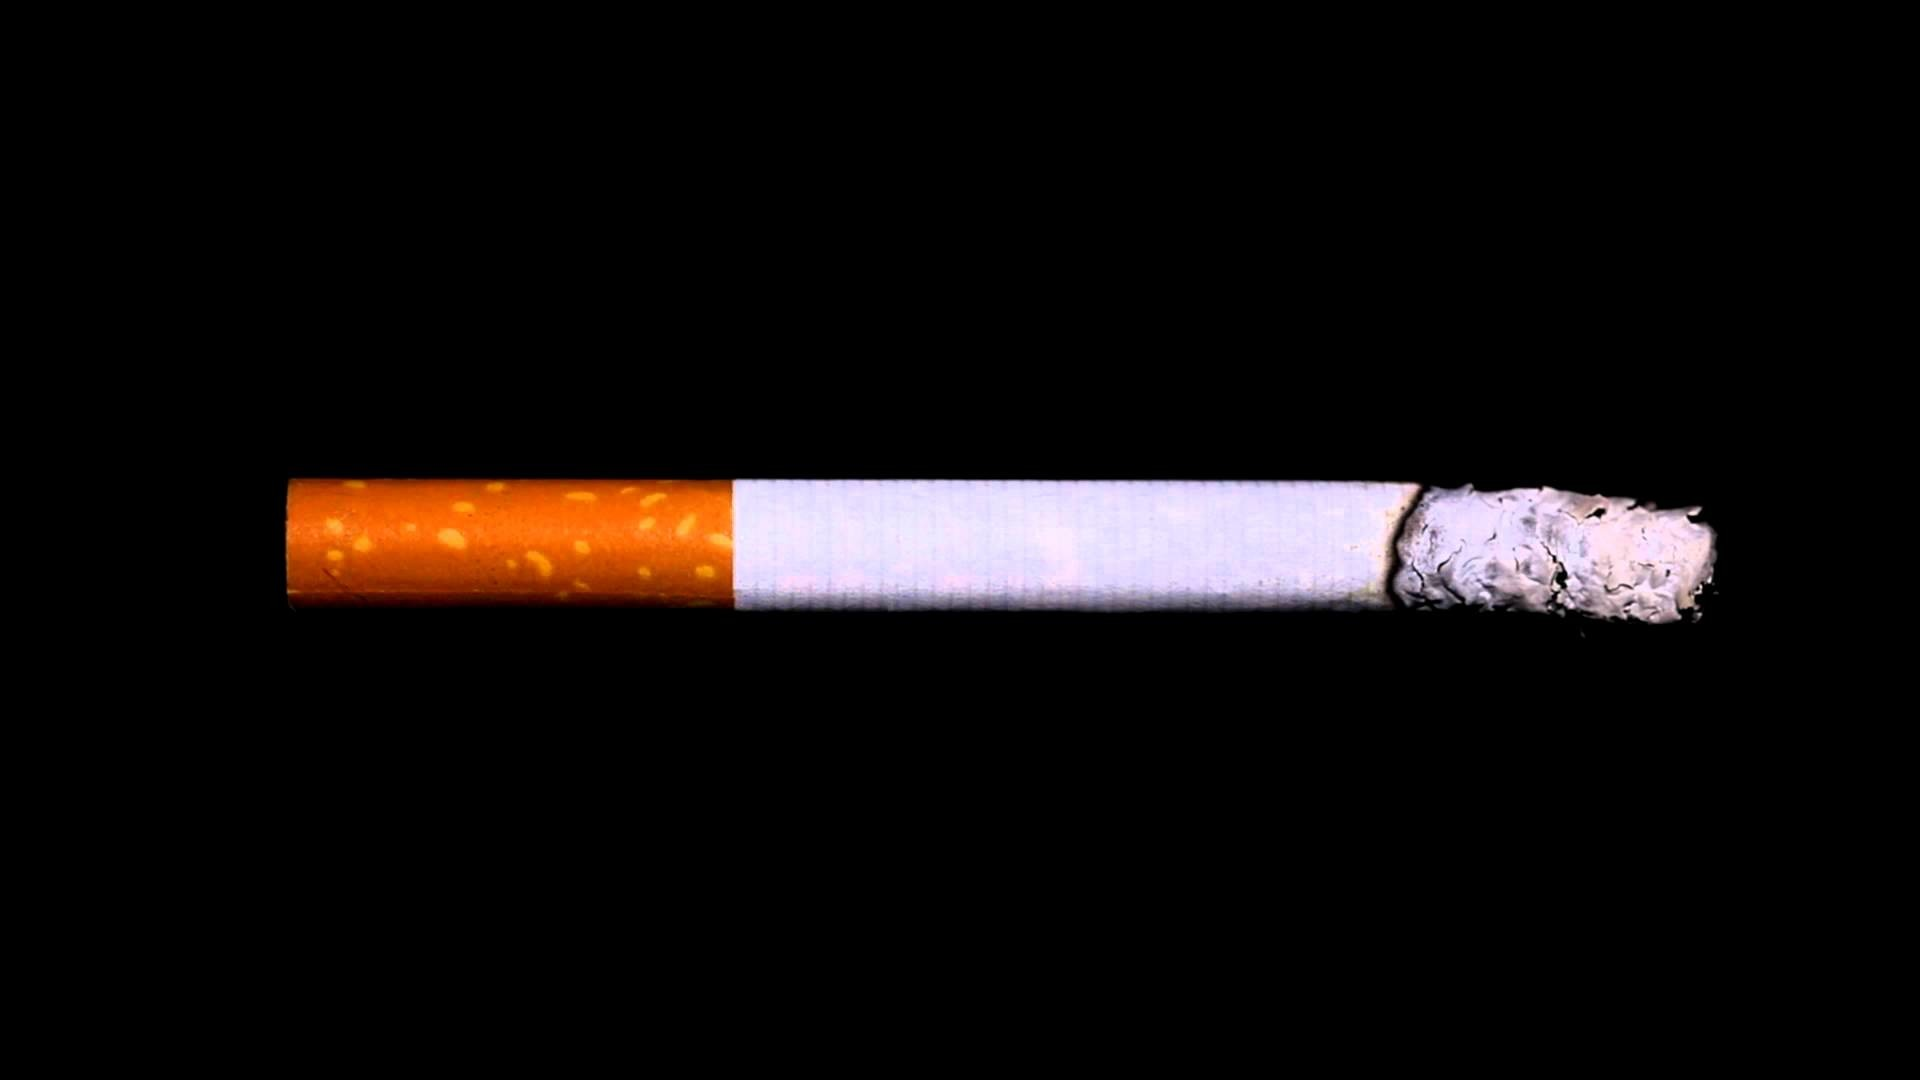 Res: 1920x1080, Cigarette Timelapse Burning Down - Free Footage - Full HD 1080p - YouTube